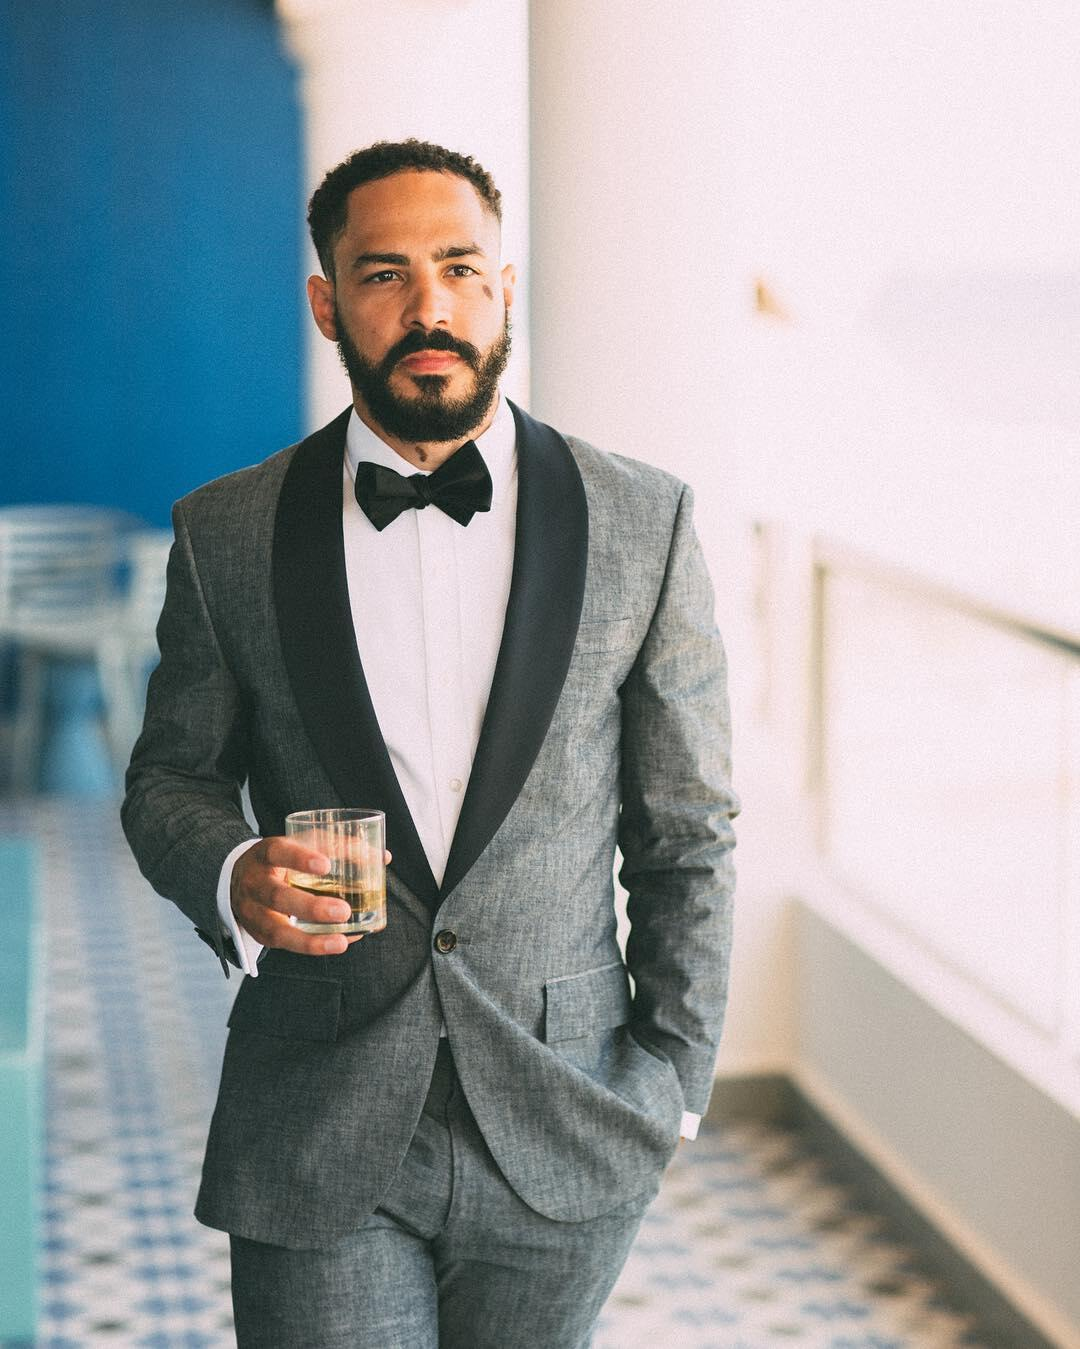 Portrait of a groom wearing a tuxedo walking with a glass in one hand.